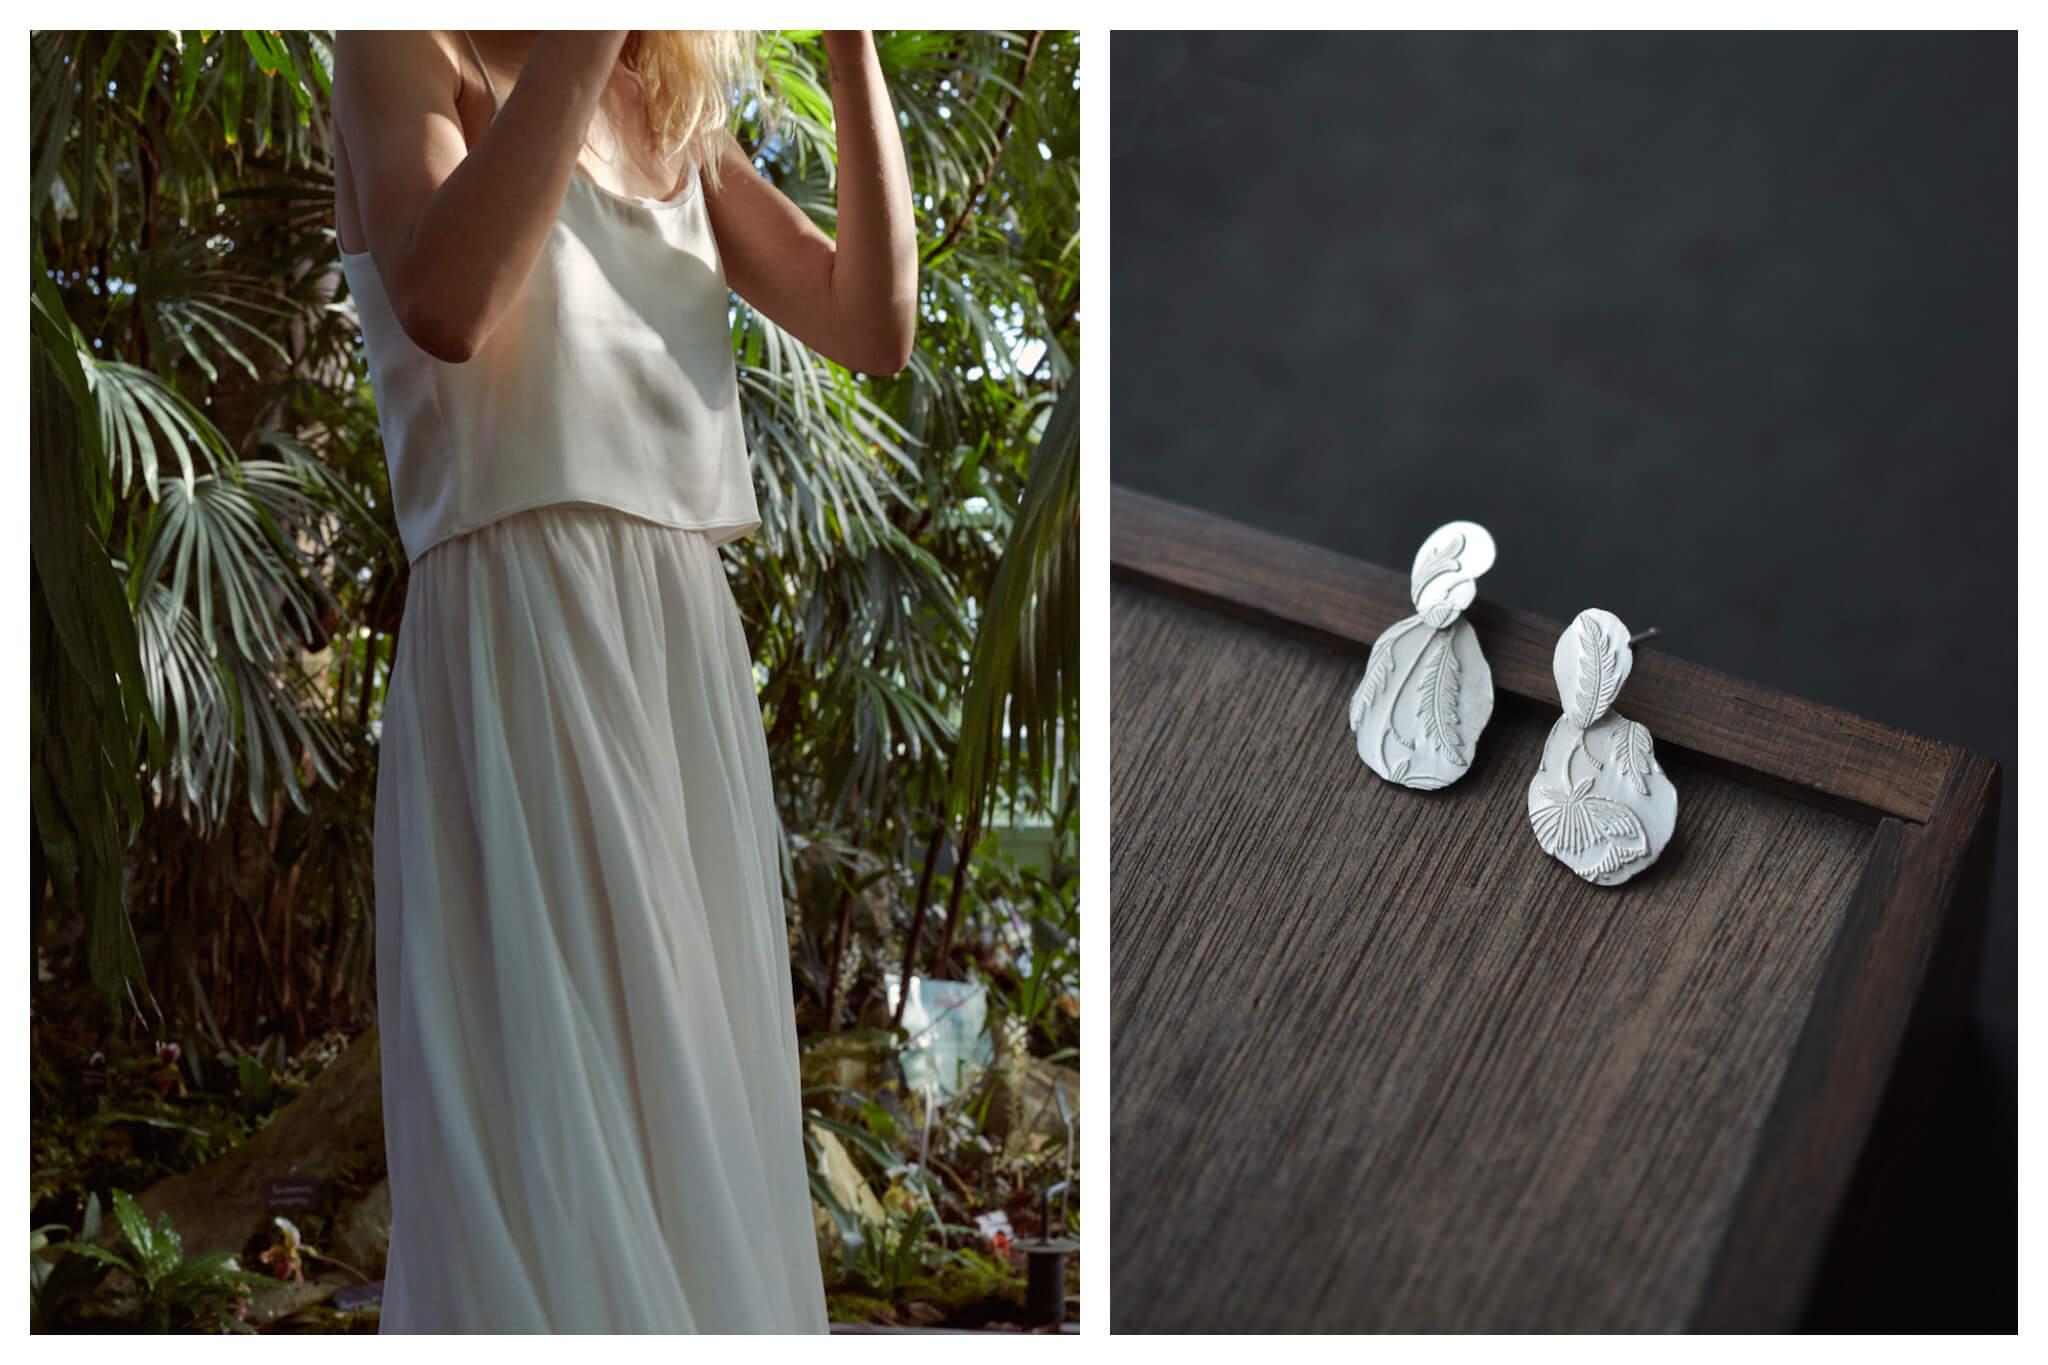 Left: A woman wearing a long white dress stands in front of green plants, Right: A pair of hand-made silver earrings sit on a wood table